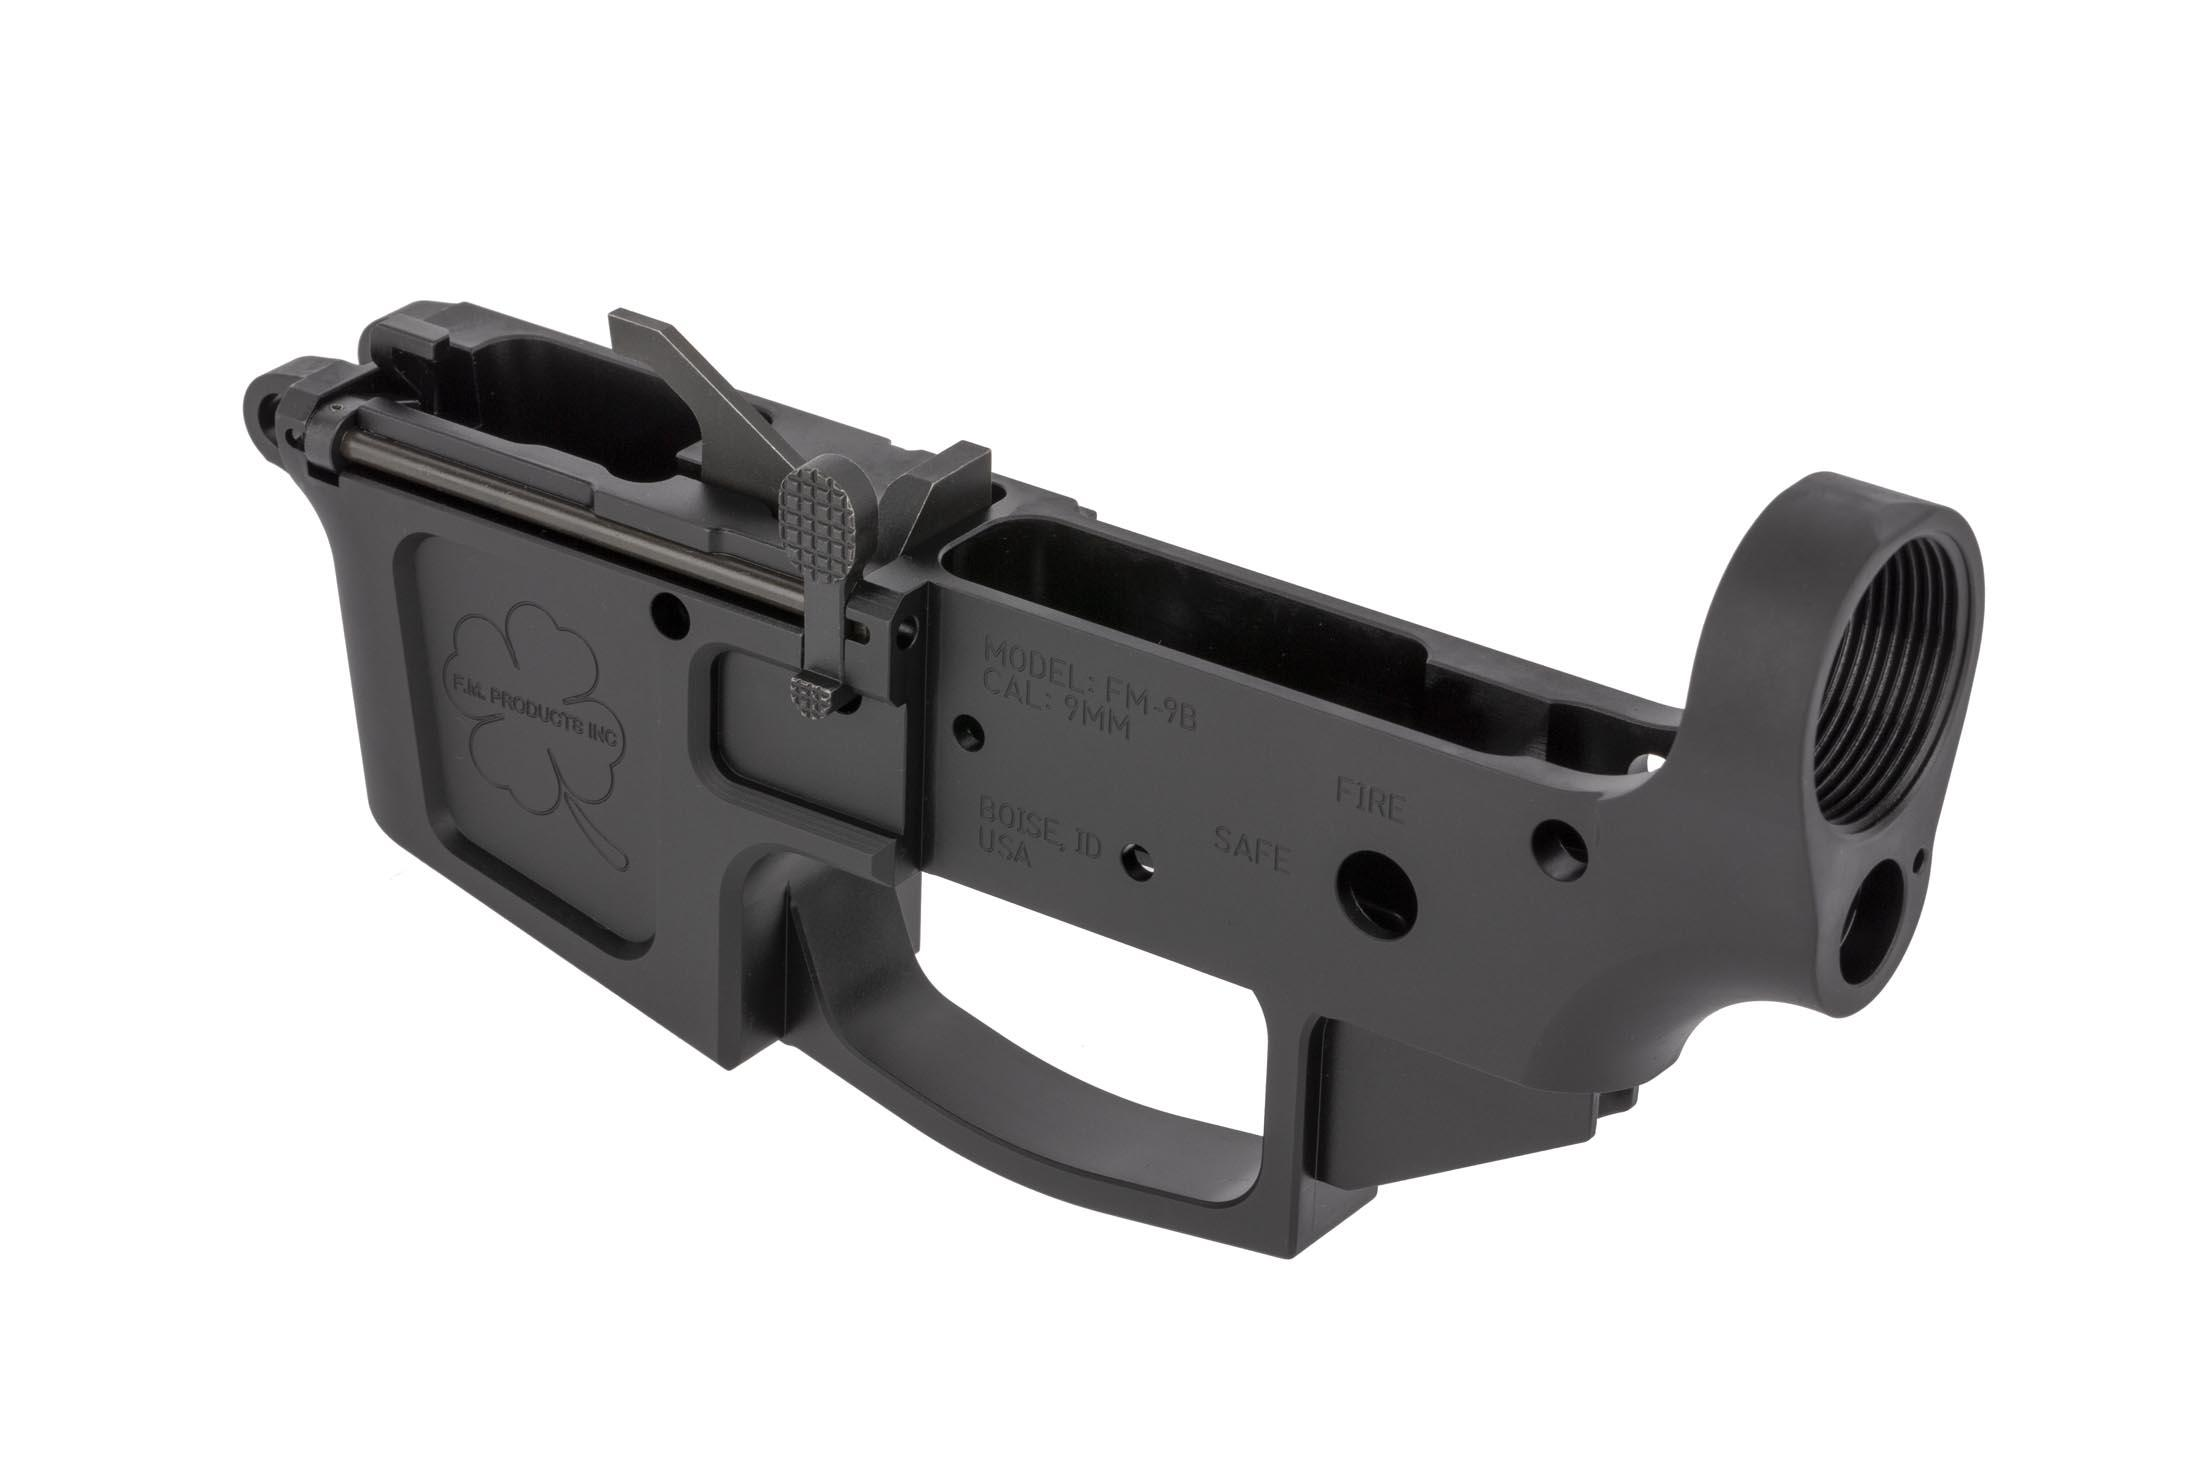 FM Products FM-9B stripped billet AR-15 9mm lower receiver is machined in Boise Idaho in the USA